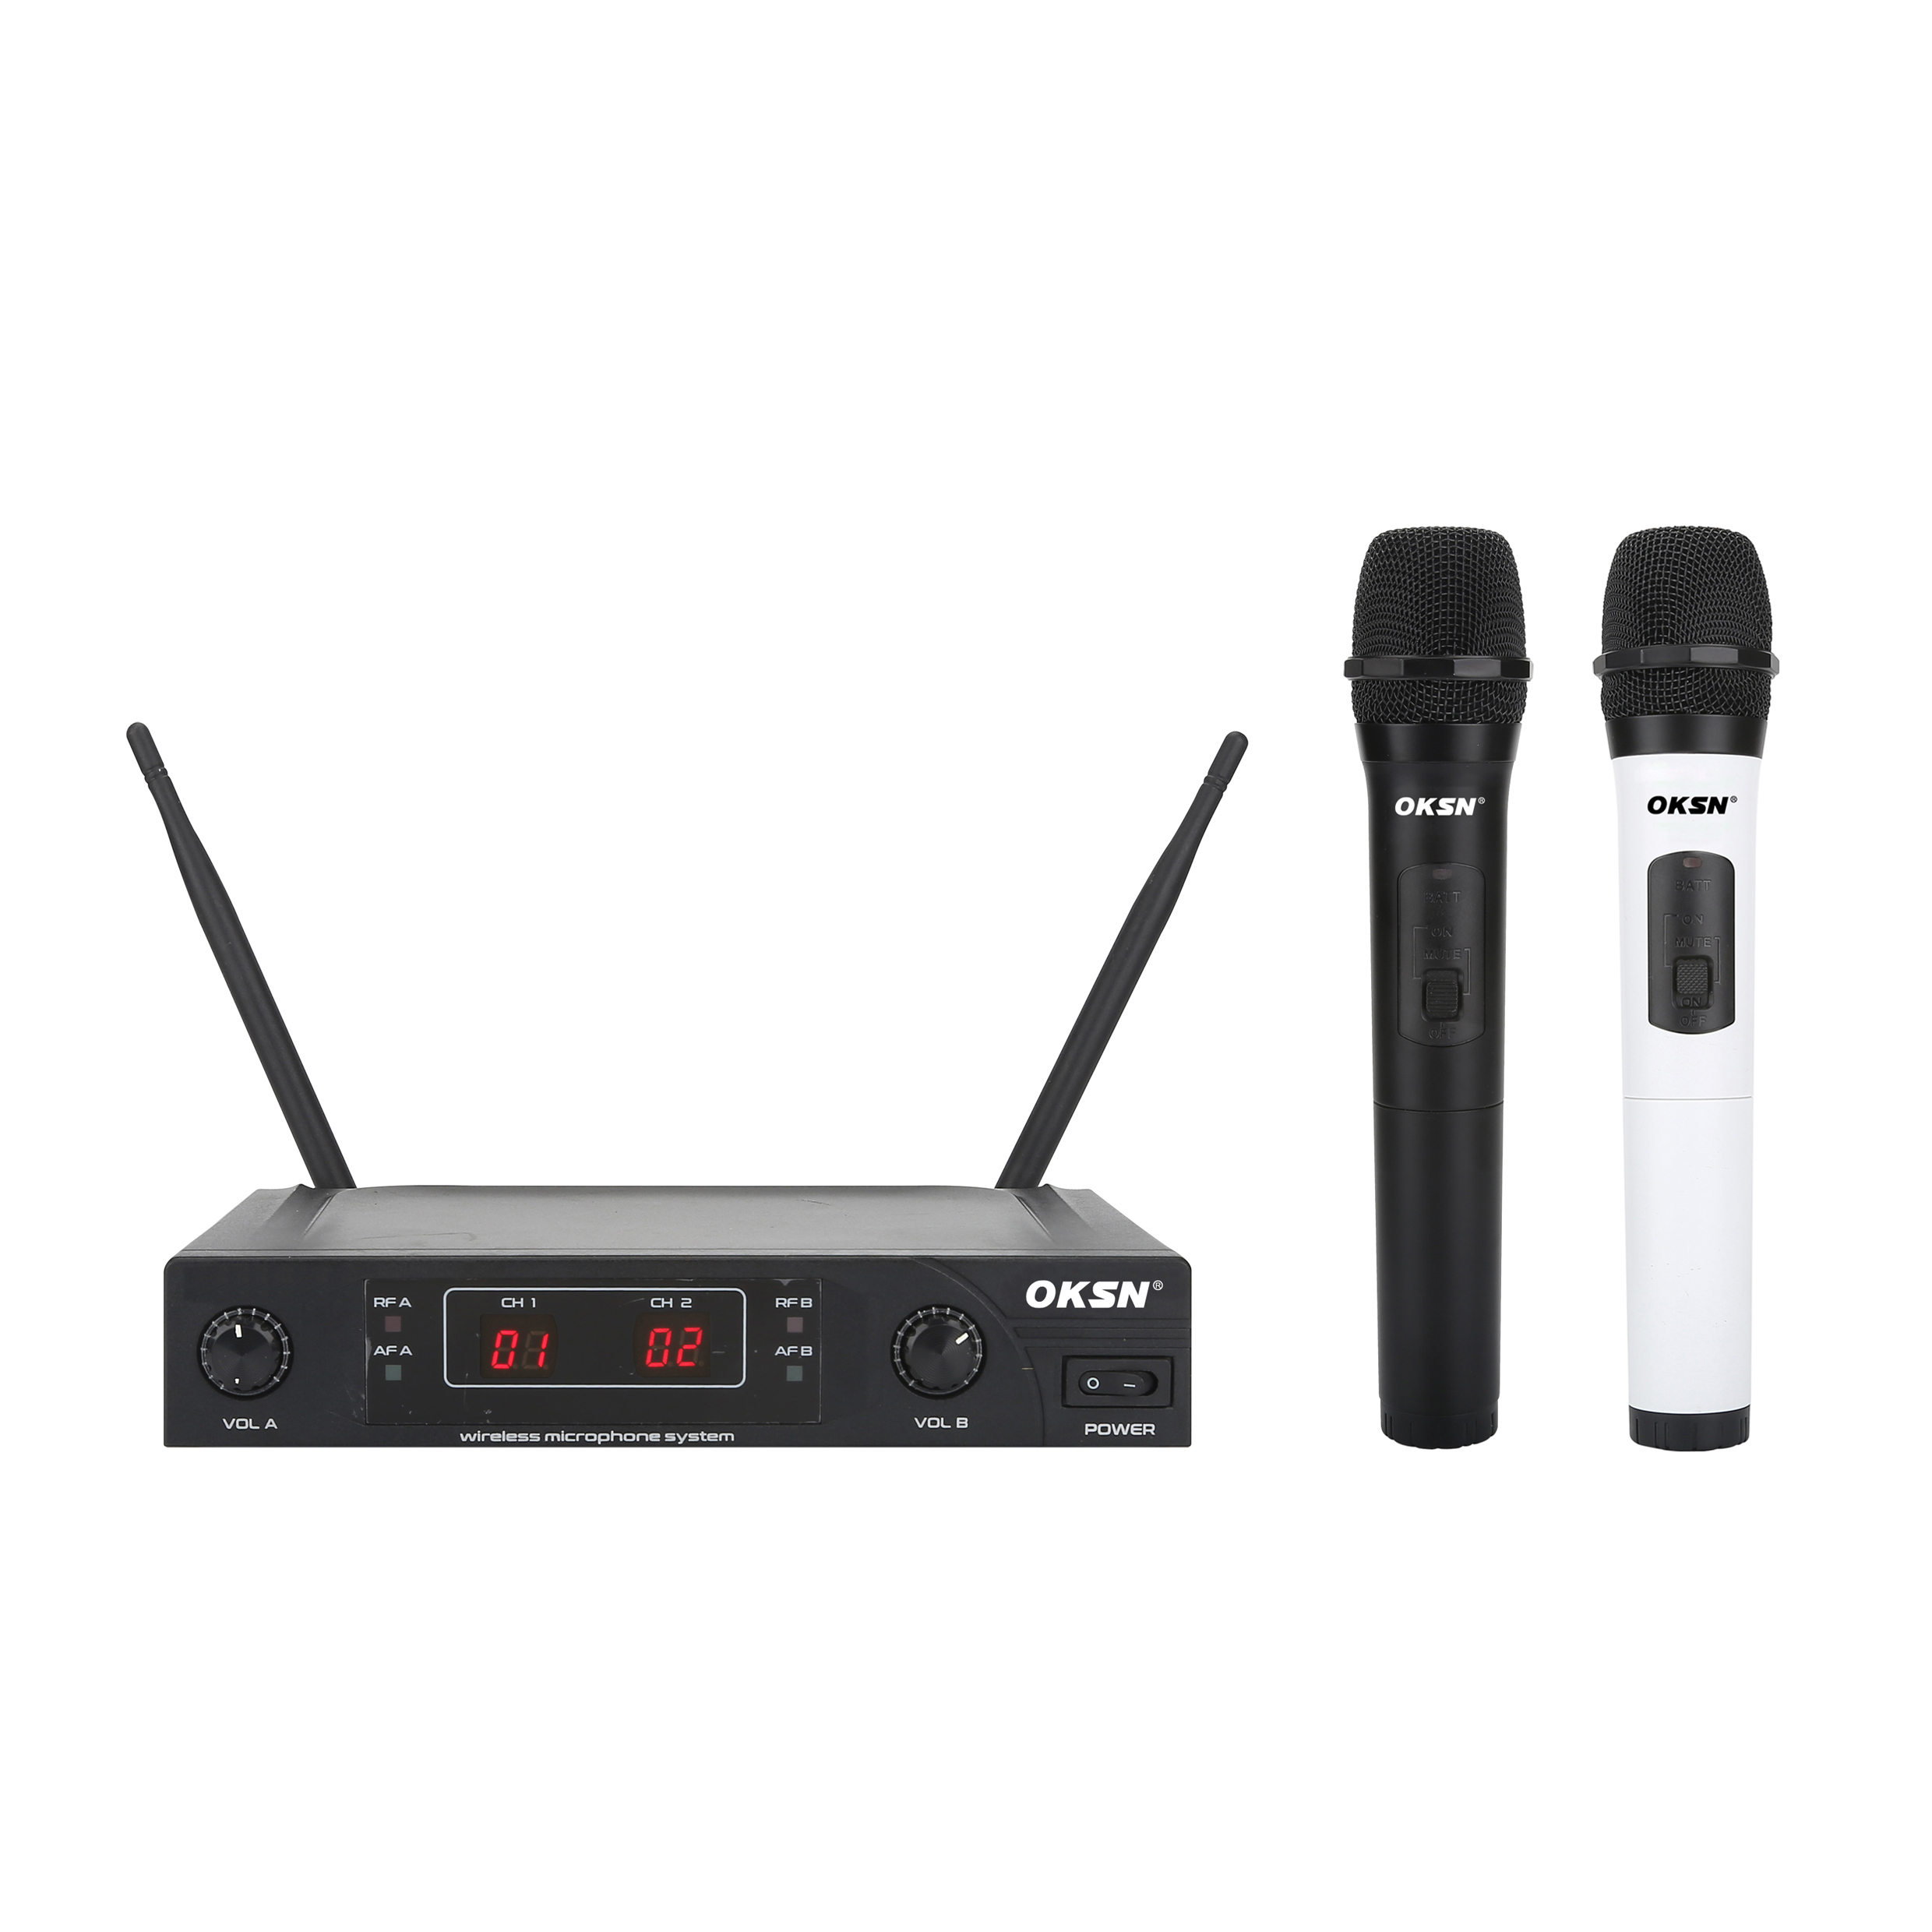 PTV-1 hot sell model latest wireless microphone